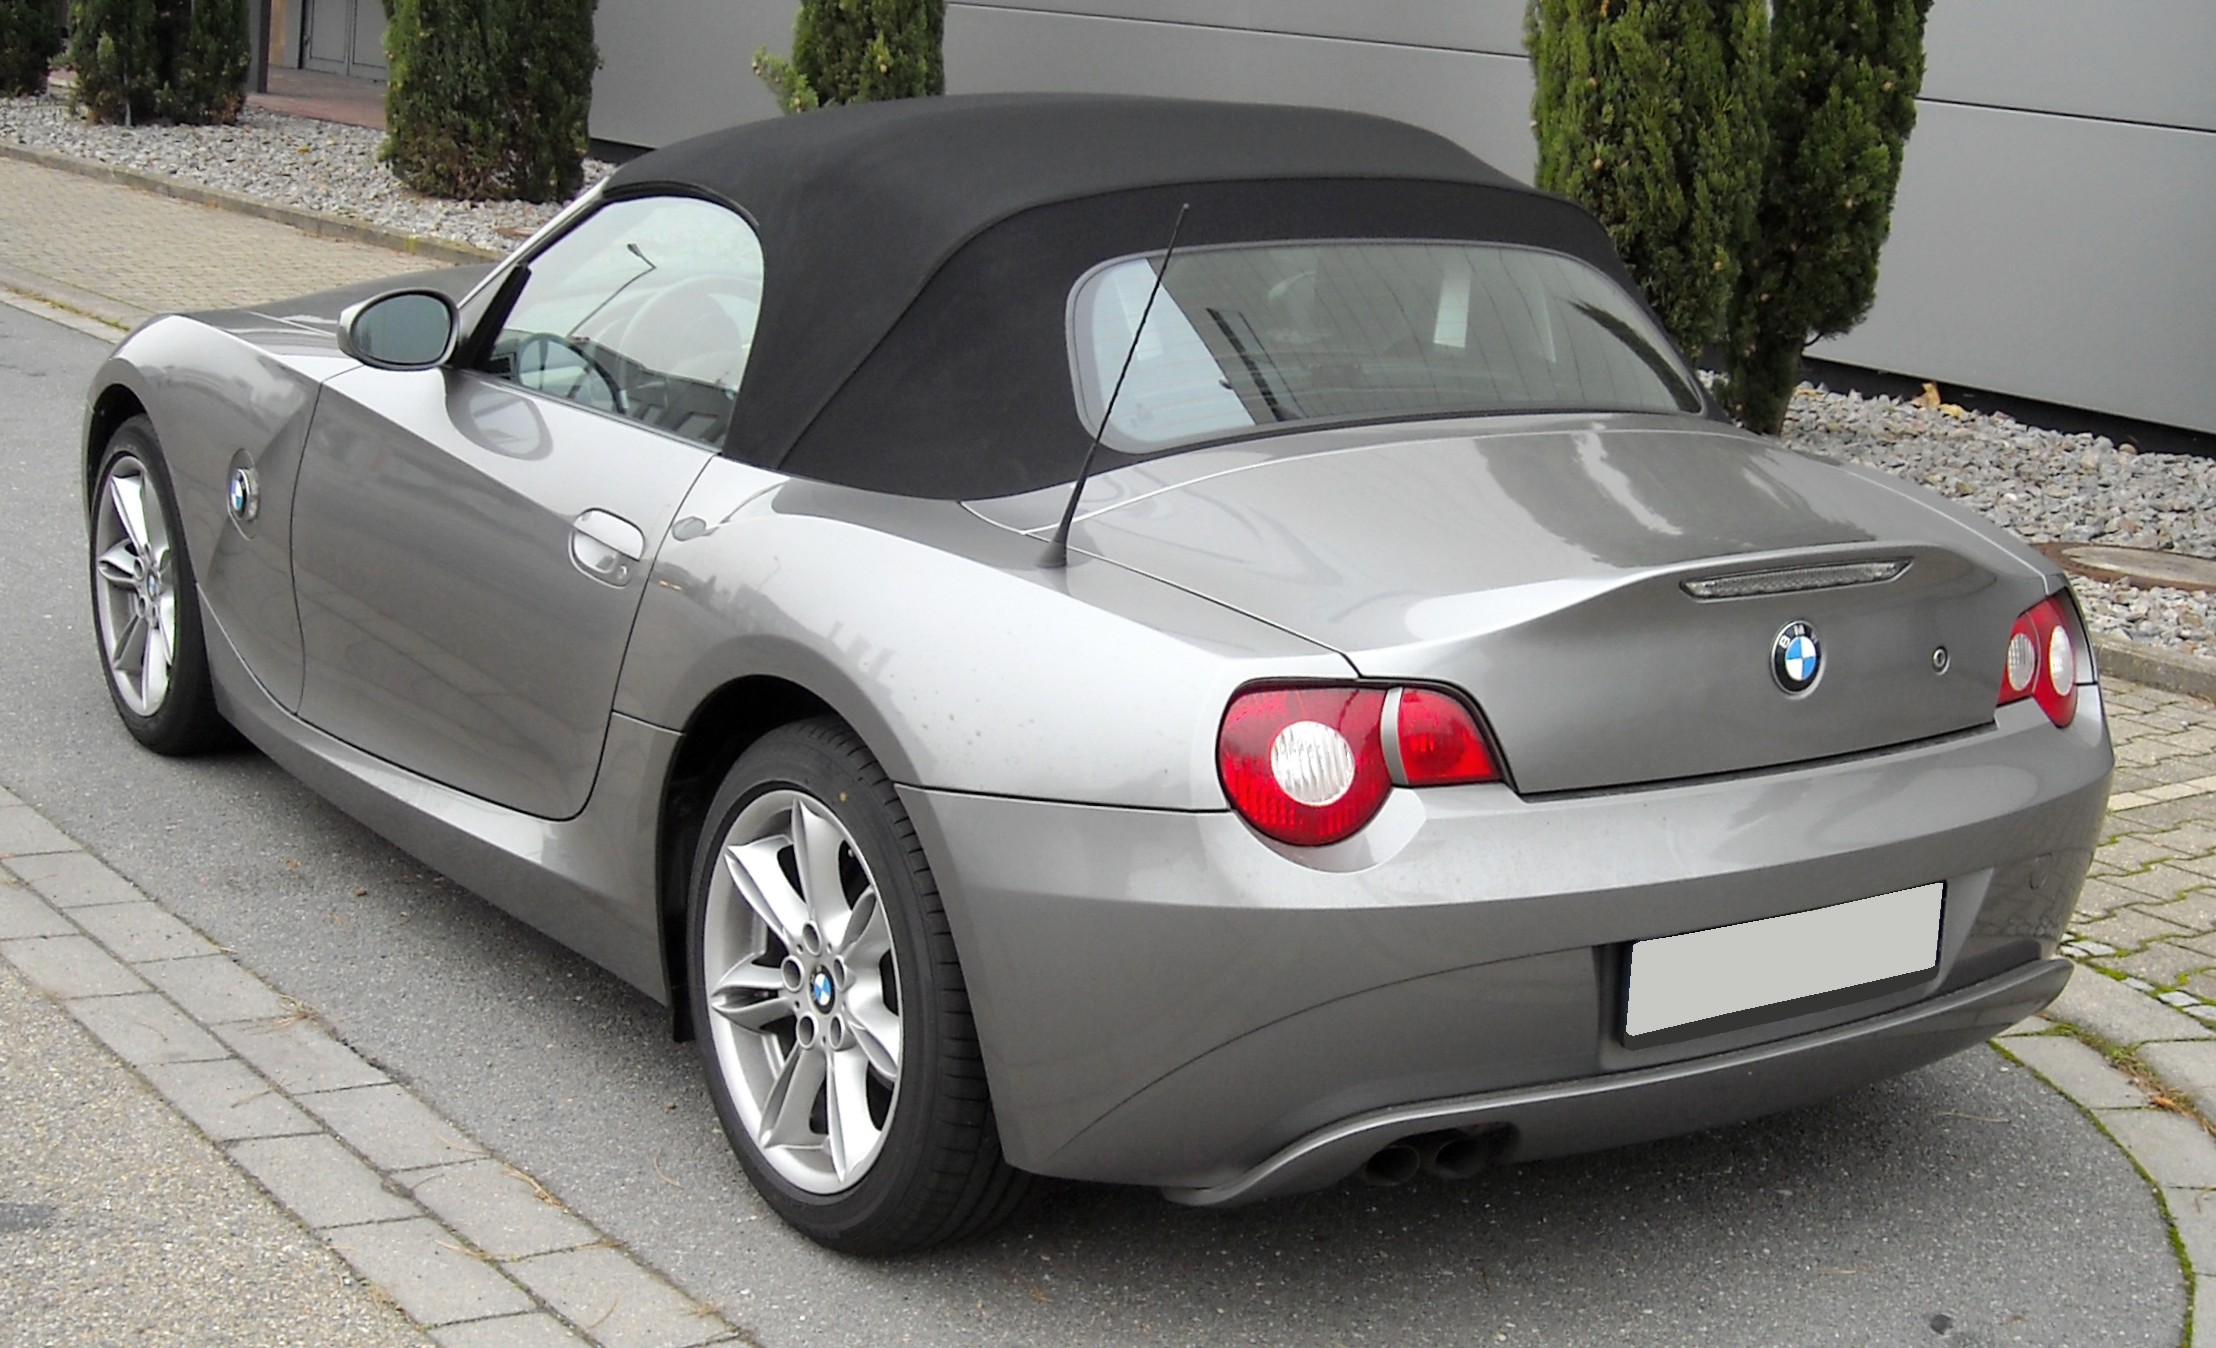 File:BMW Z4 rear 20081201.jpg